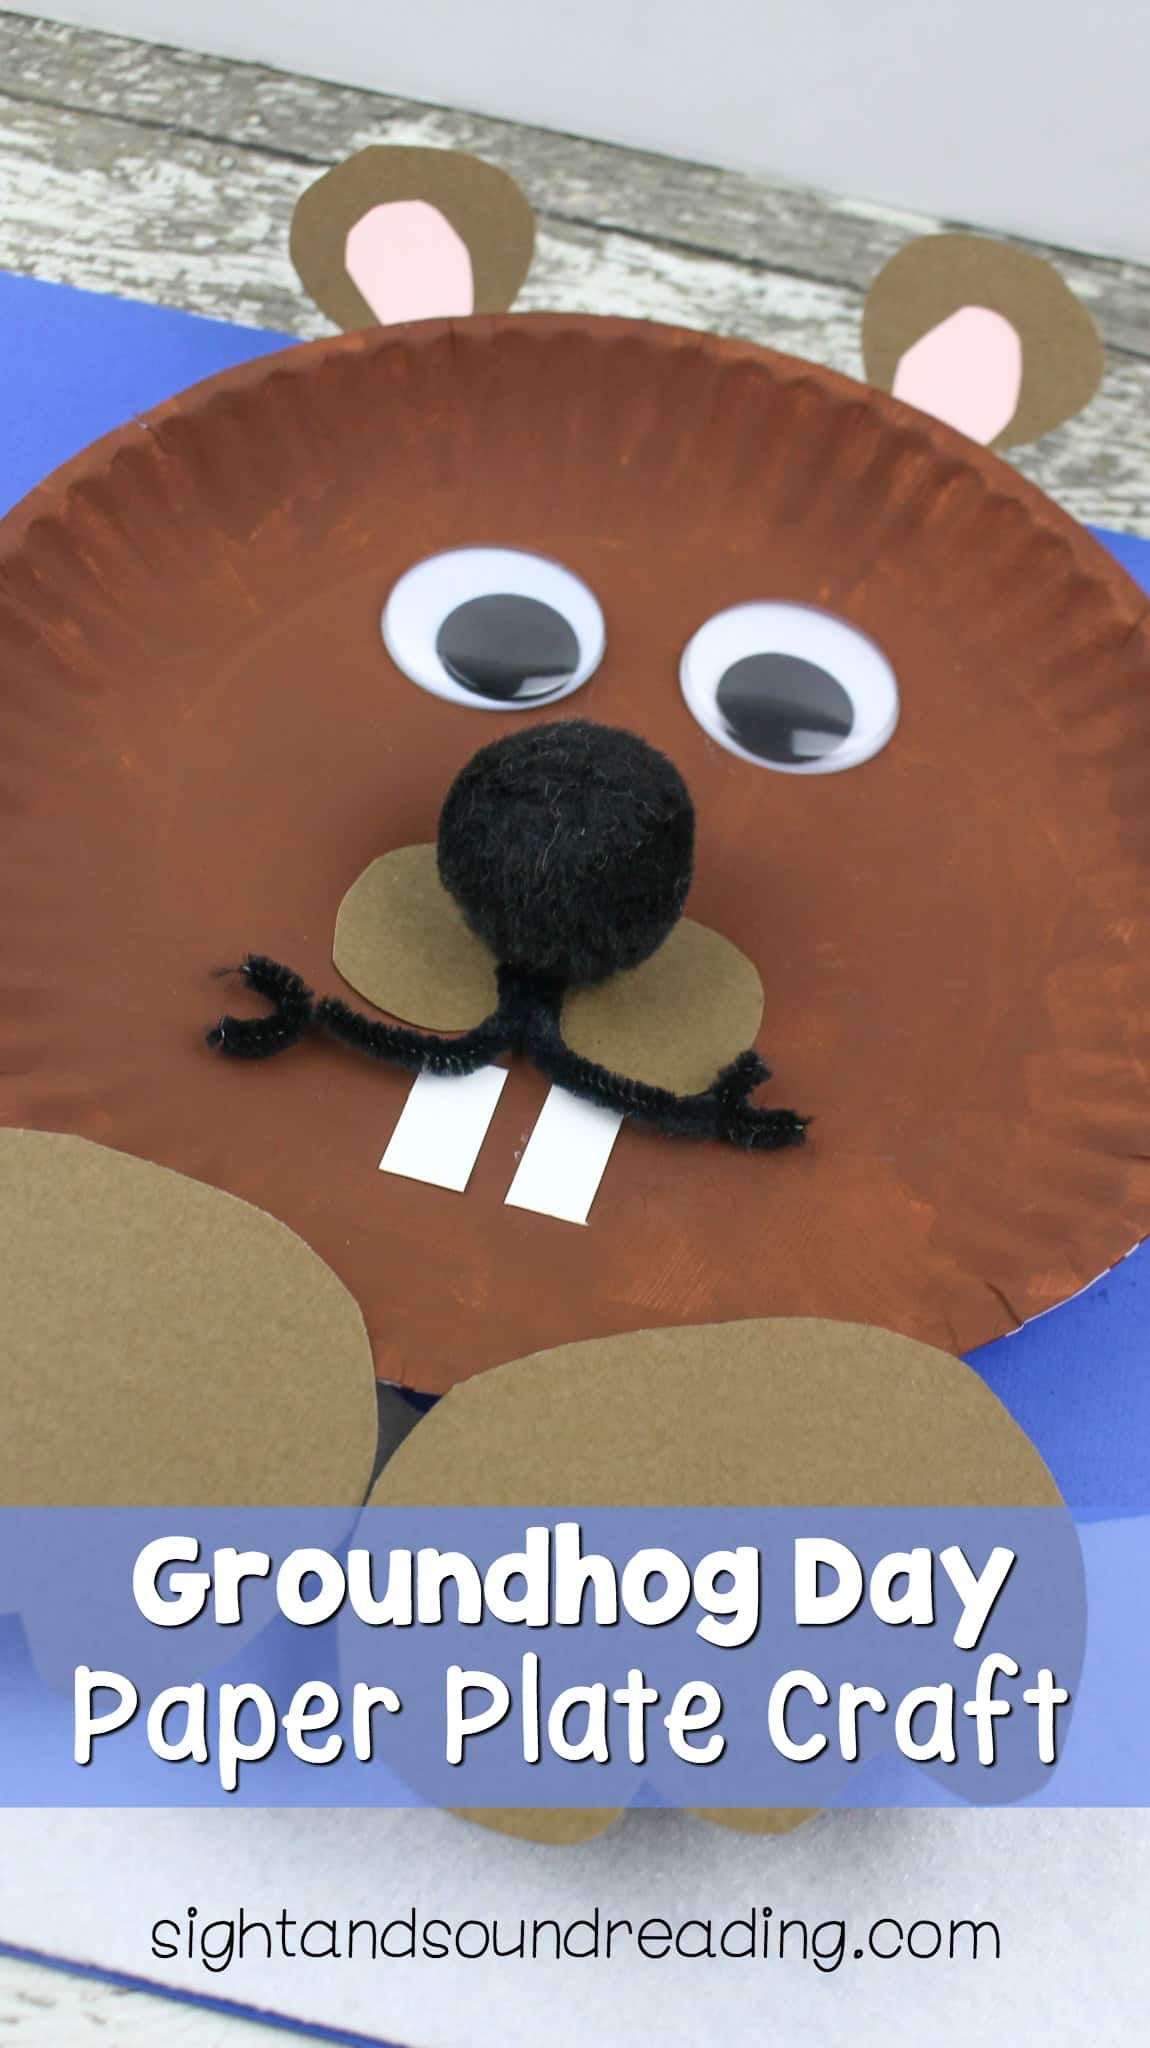 If you love crafts, it will be great to do some crafty things to celebrate the day. Today, I would like to share groundhog day paper plate craft